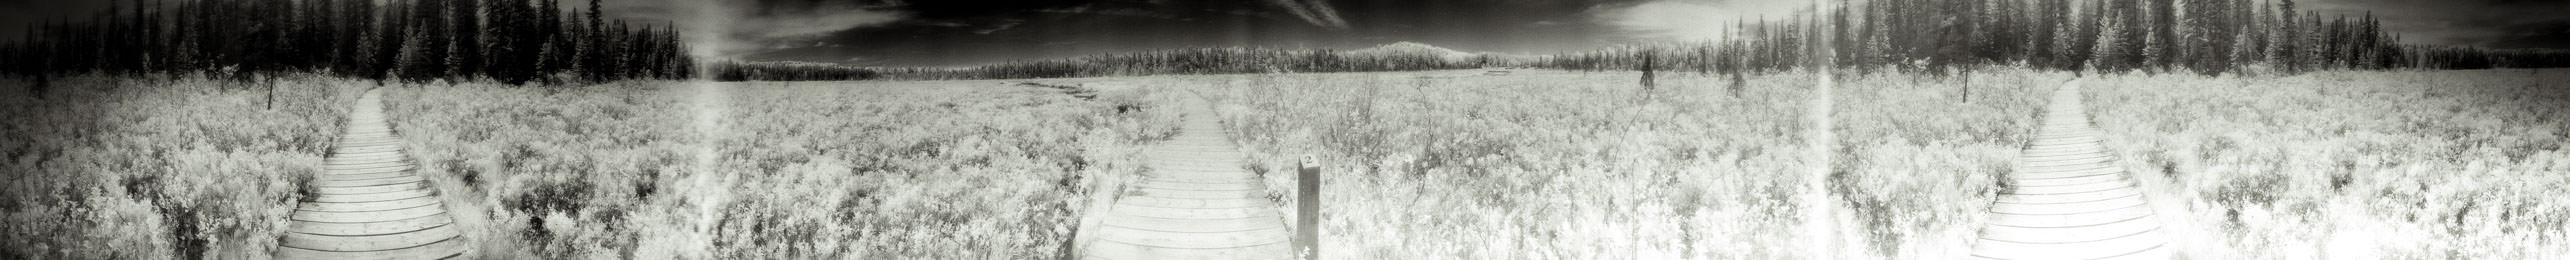 """""""Pathway 2"""" from the series Footprints, by William Mokrynski"""